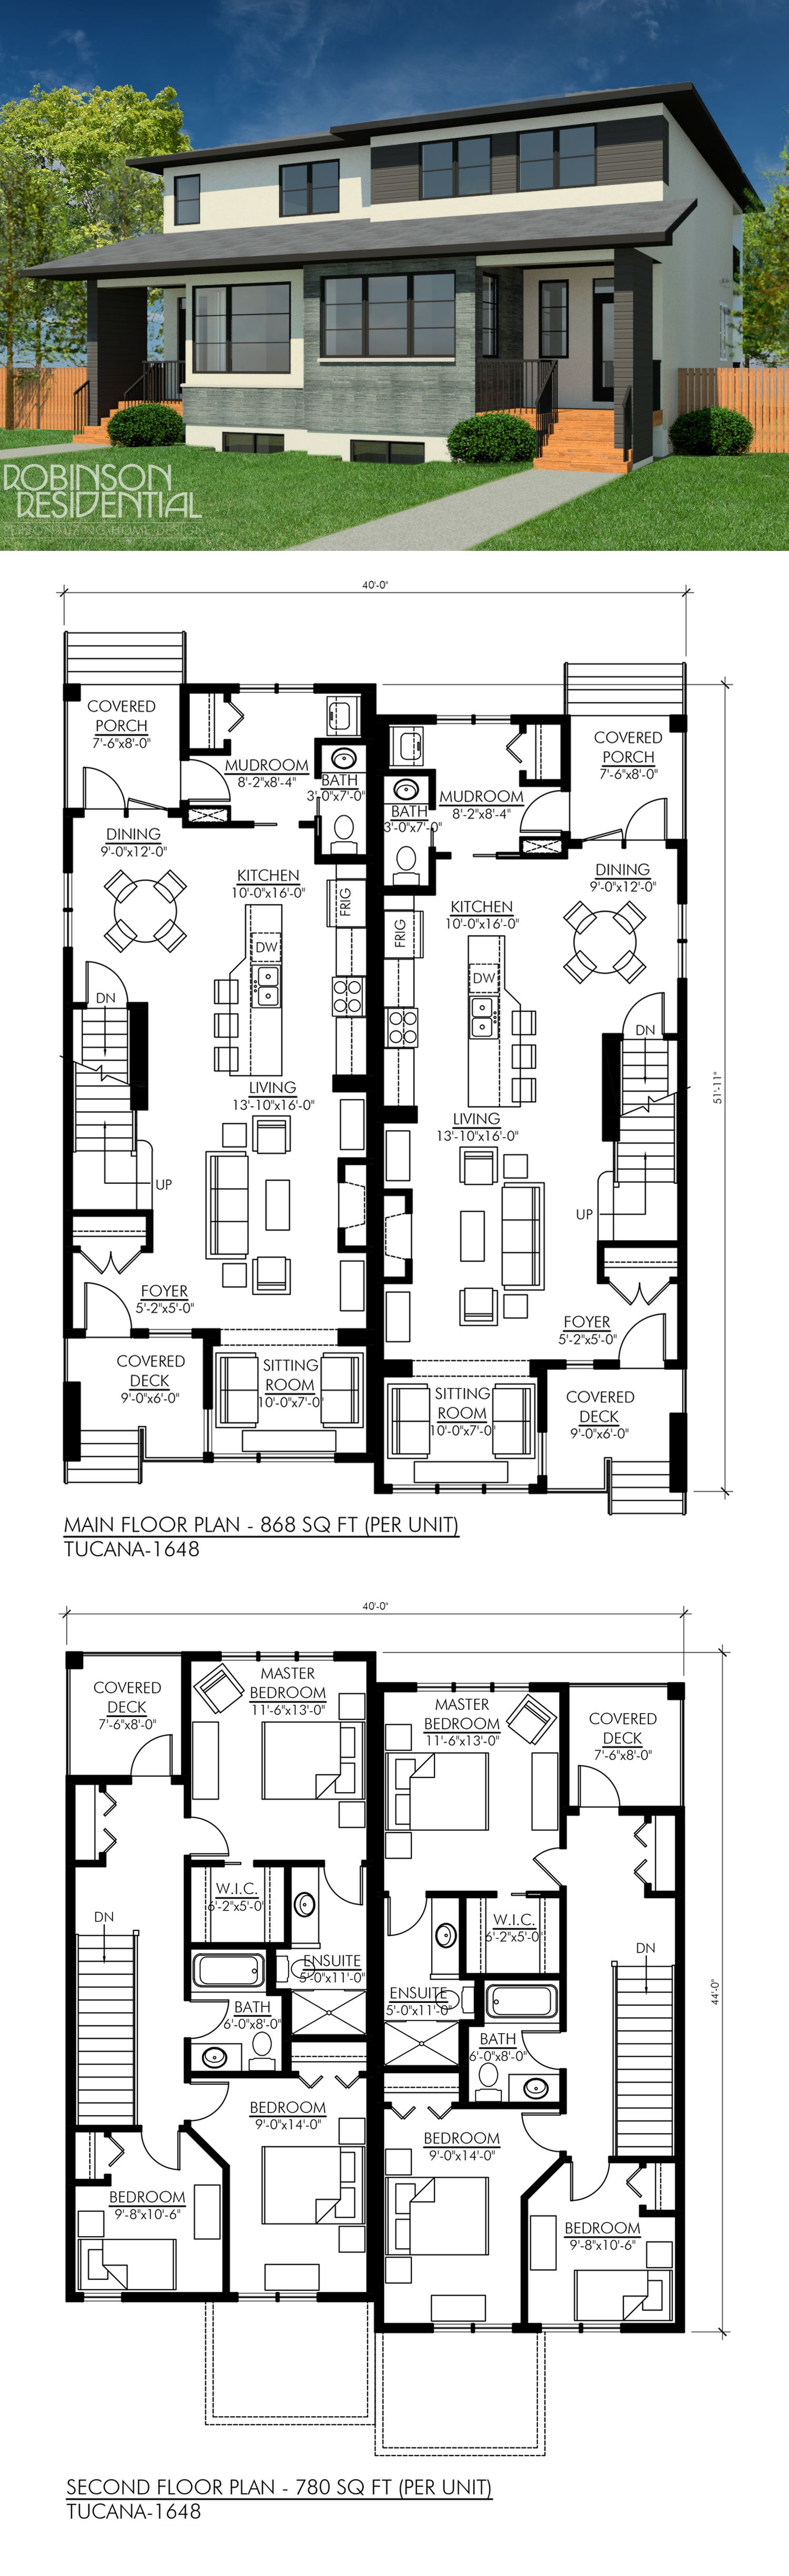 Contemporary Tucana 1648 Robinson Plans House Plans Duplex House Plans Family House Plans